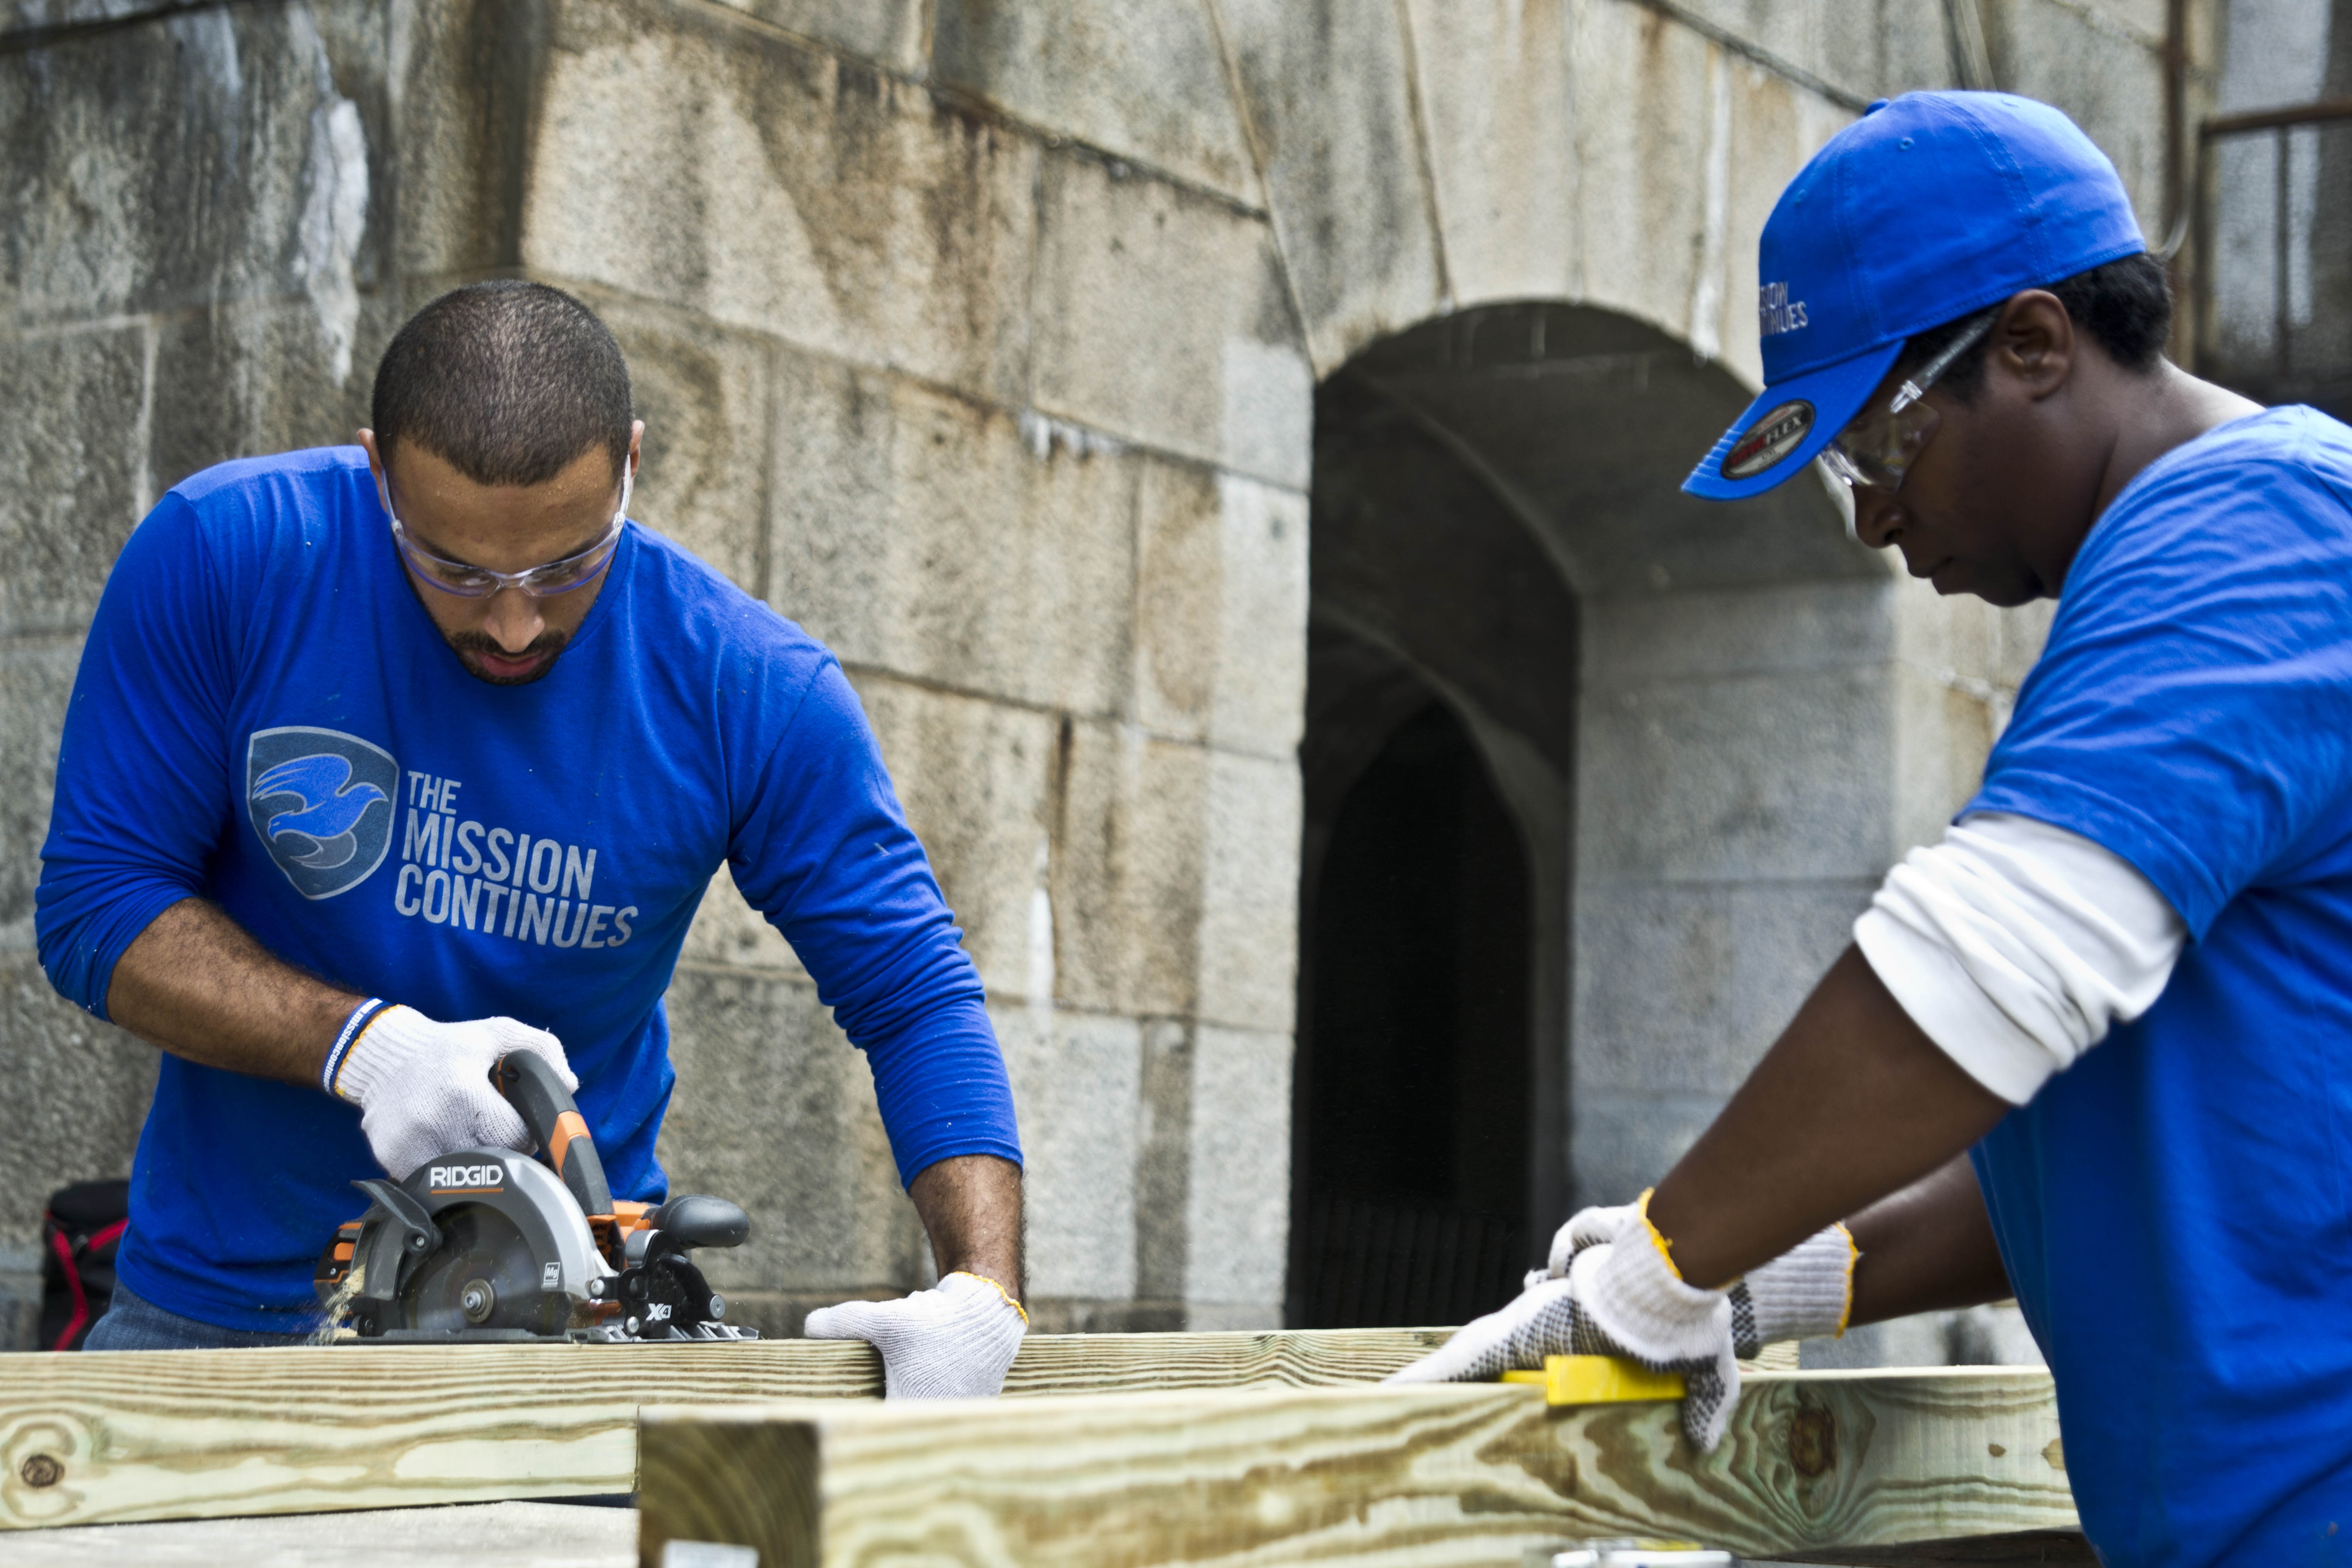 Platoon members construct benches at Ft. Wadsworth, September 11, 2015.